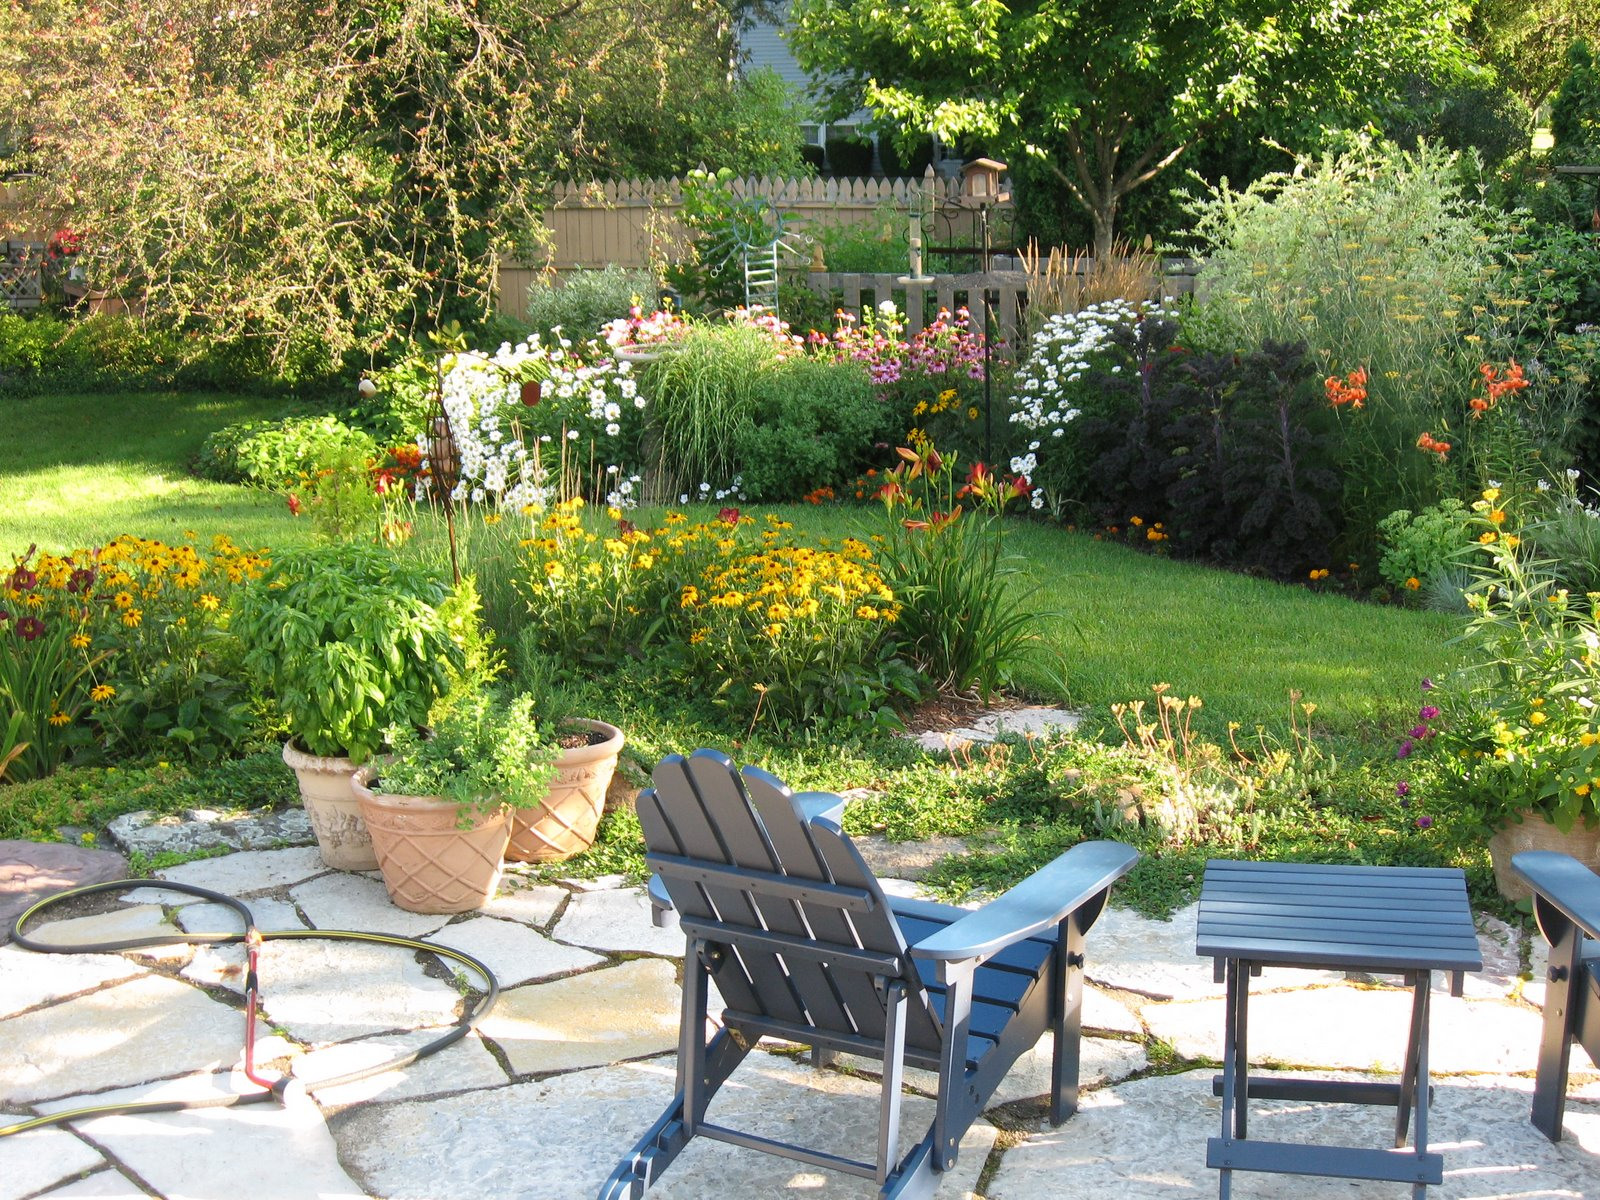 Blog awards linda 39 s yoga journey for Home and garden landscaping